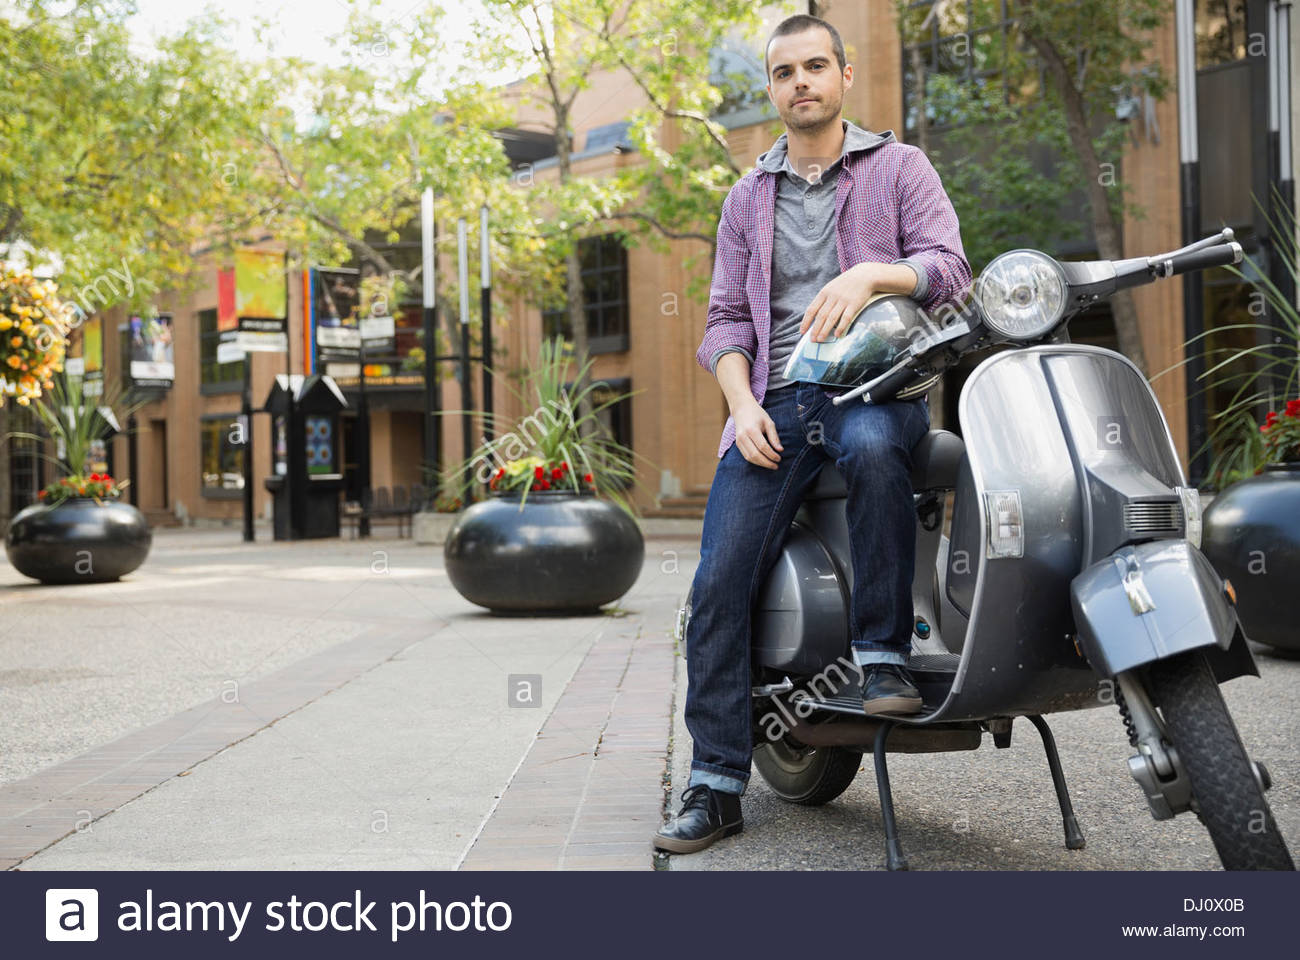 Portrait of man sitting on scooter - Stock Image